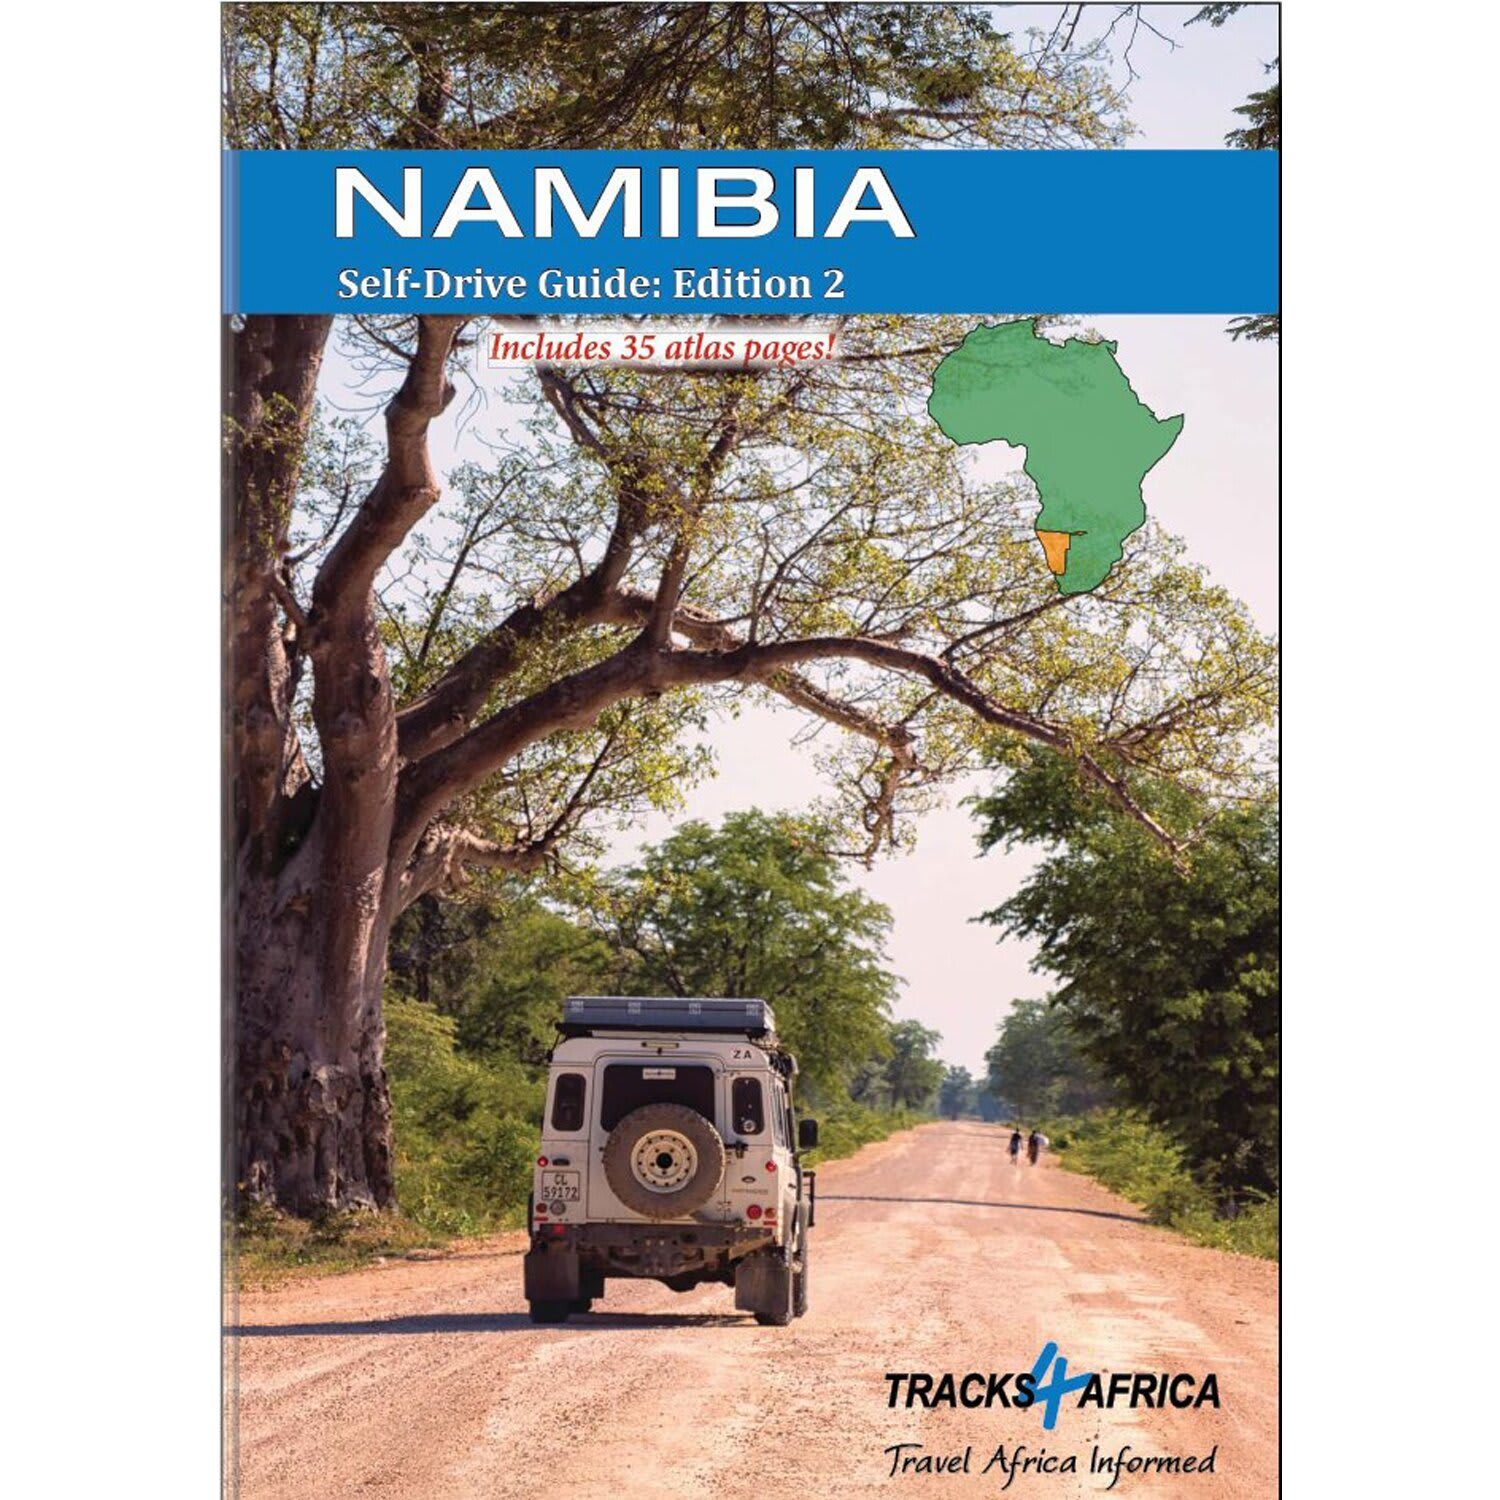 Tracks4Africa Namibia Self-Drive Guide Version 2